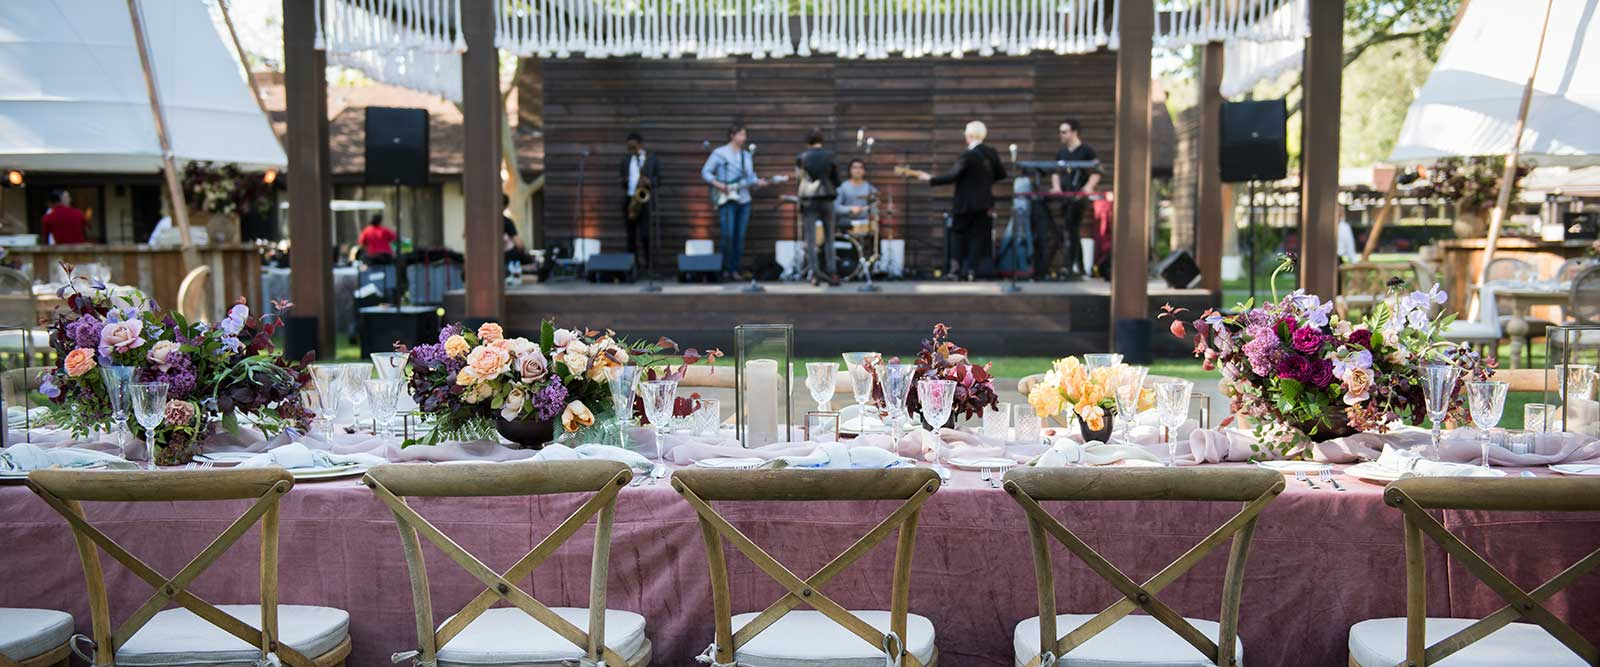 The Wedding Couple's table at wedding reception at the Alisal Guest Ranch & Resort